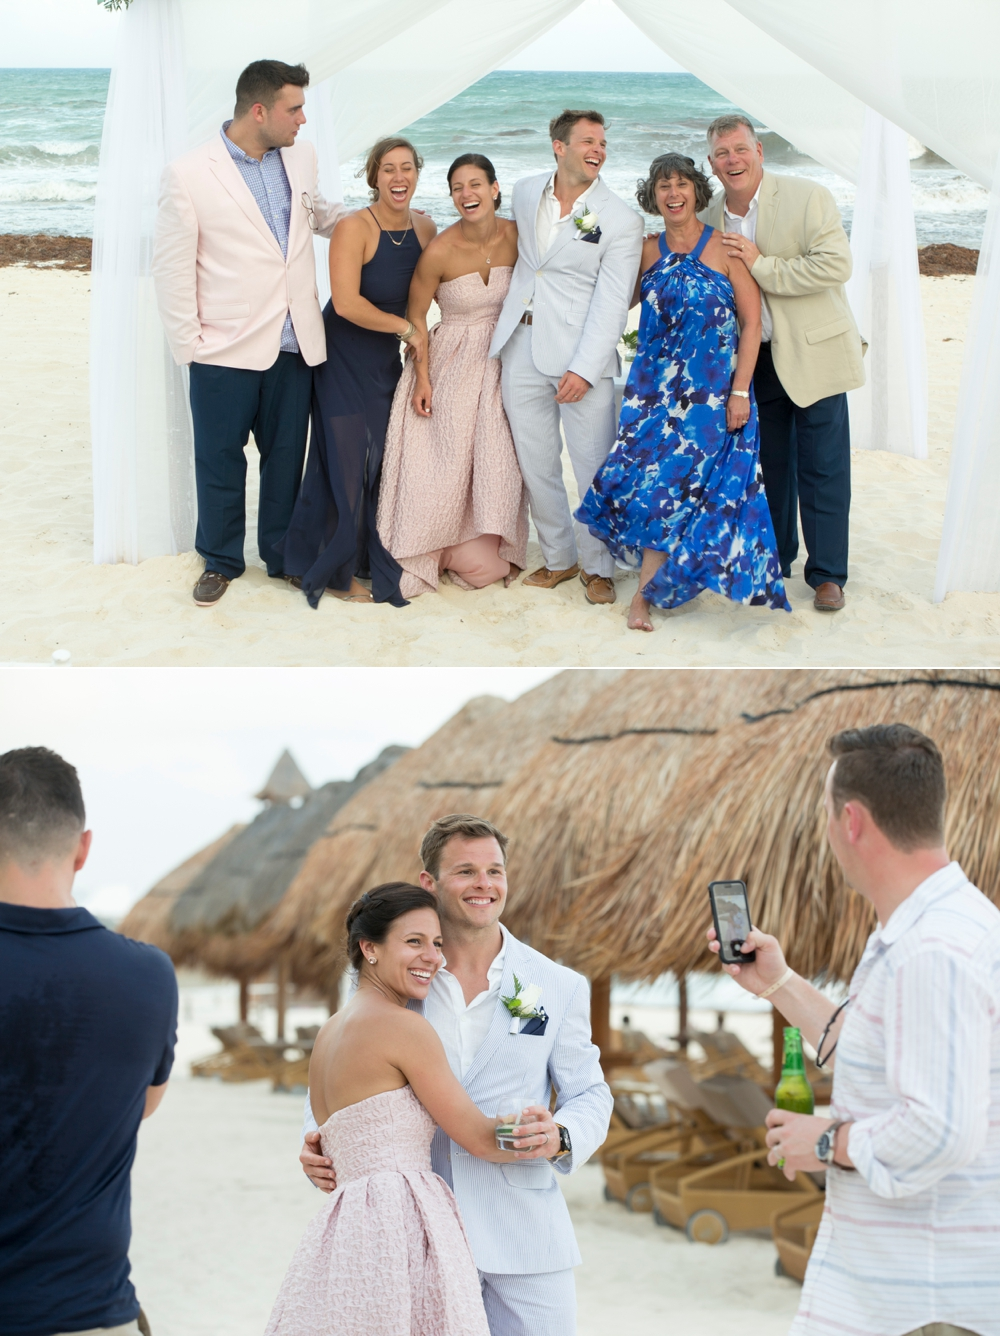 SomerbyJonesPhotography_IberostarGrandHotelParaiso_Mexico_Wedding_0030.jpg